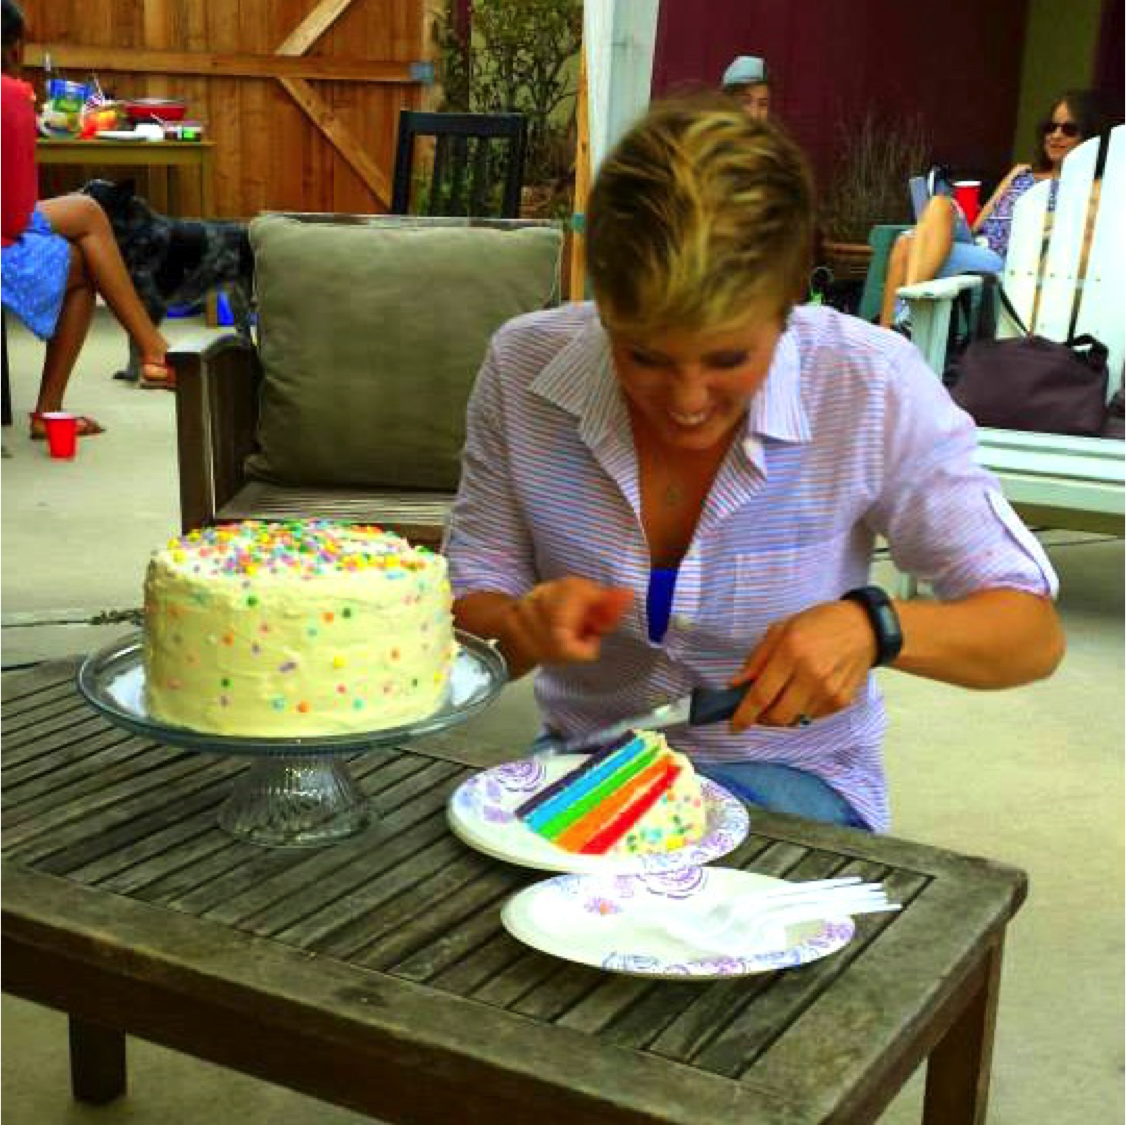 Rainbow cake cutting